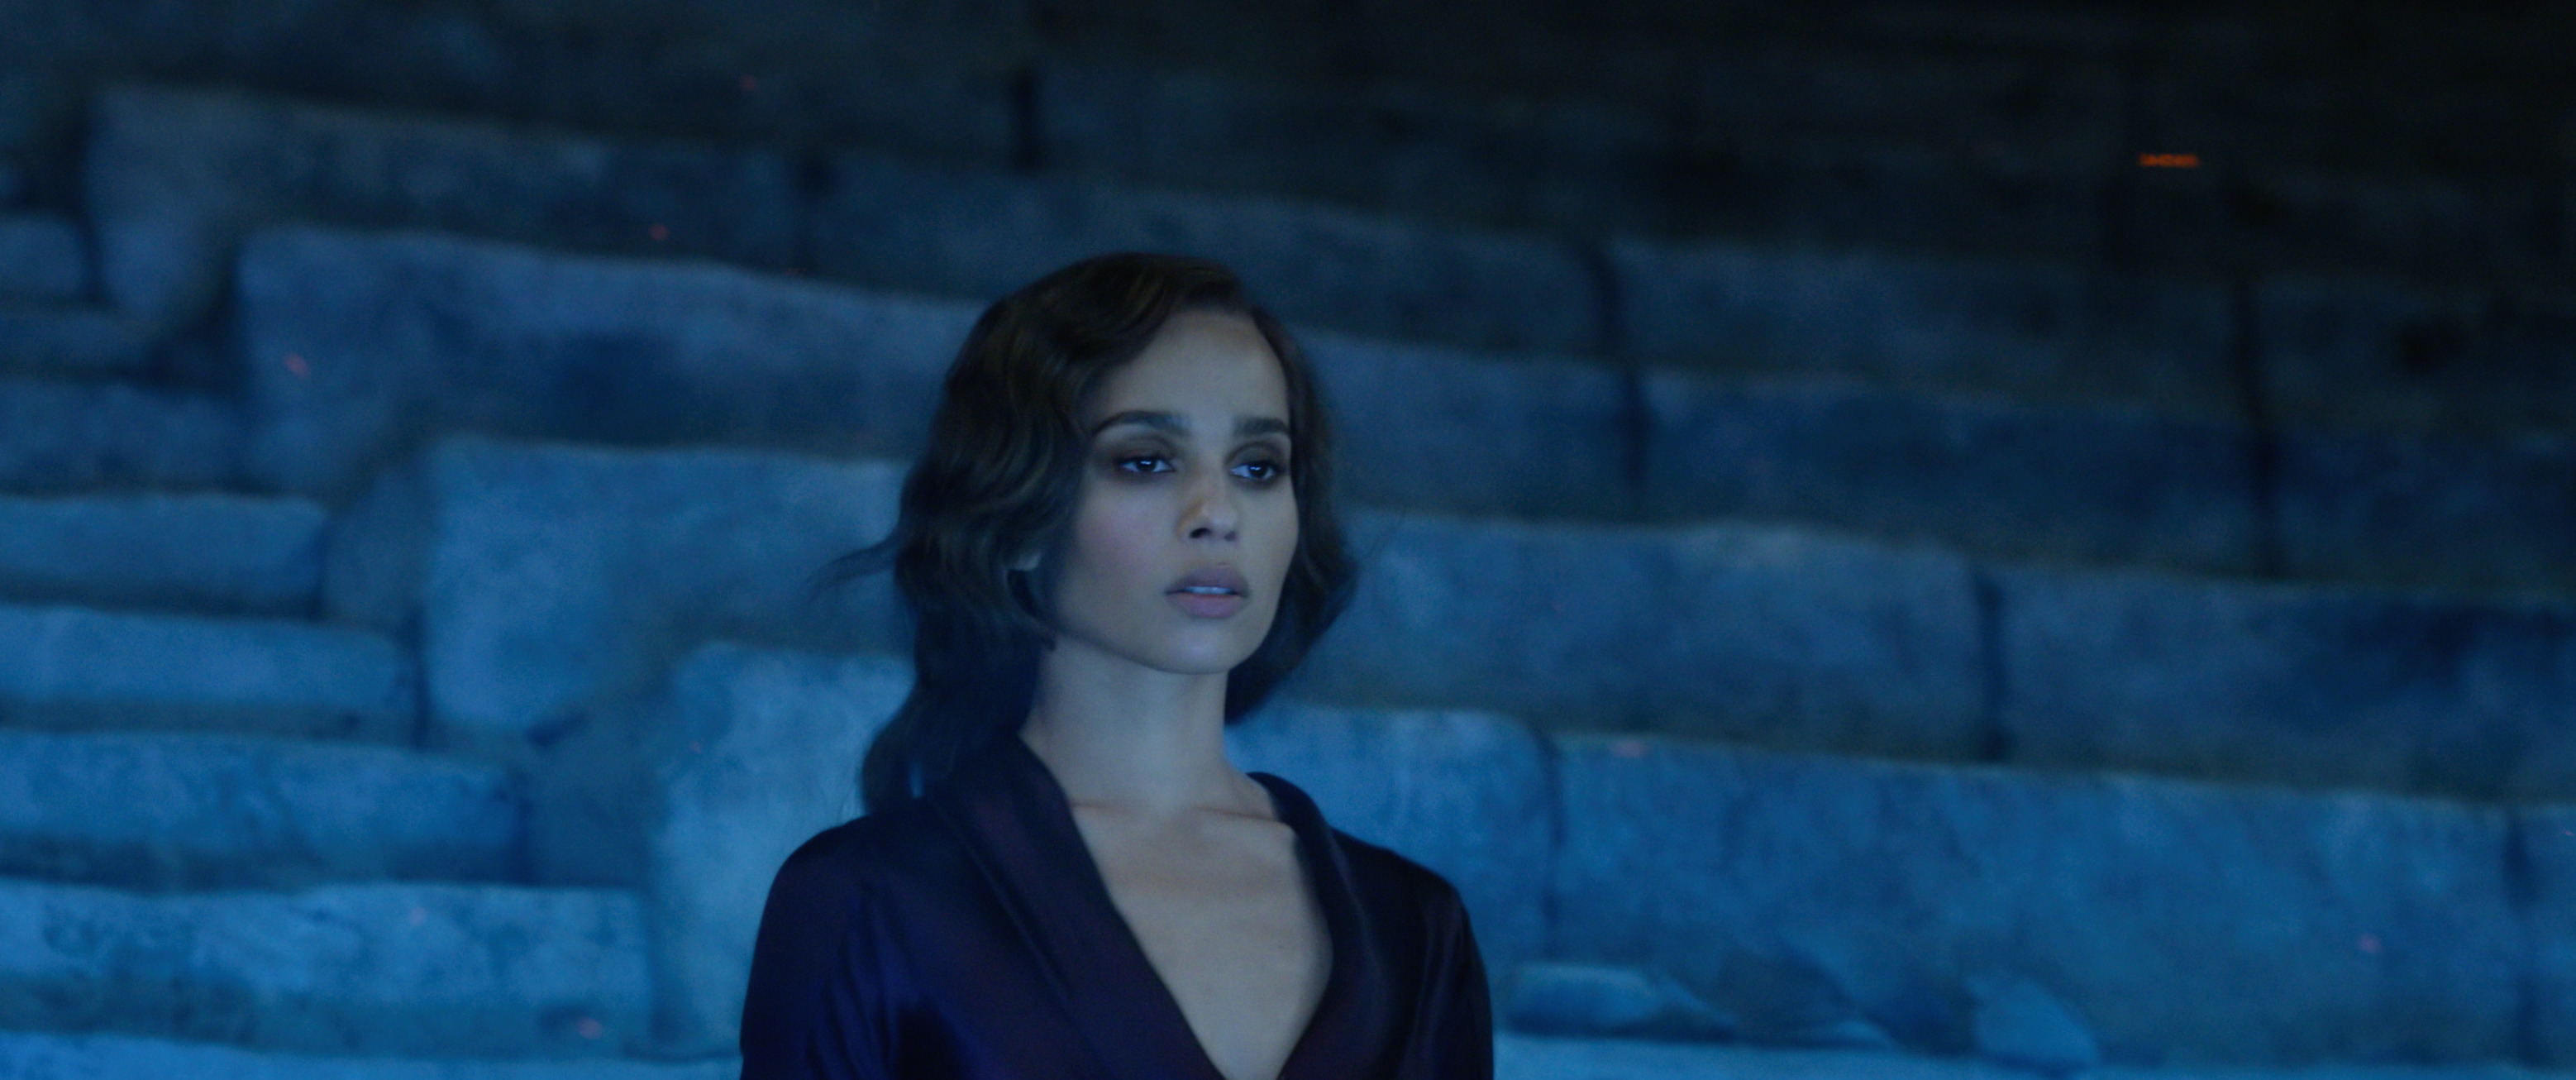 Zoë Kravitz as Leta Lestrange